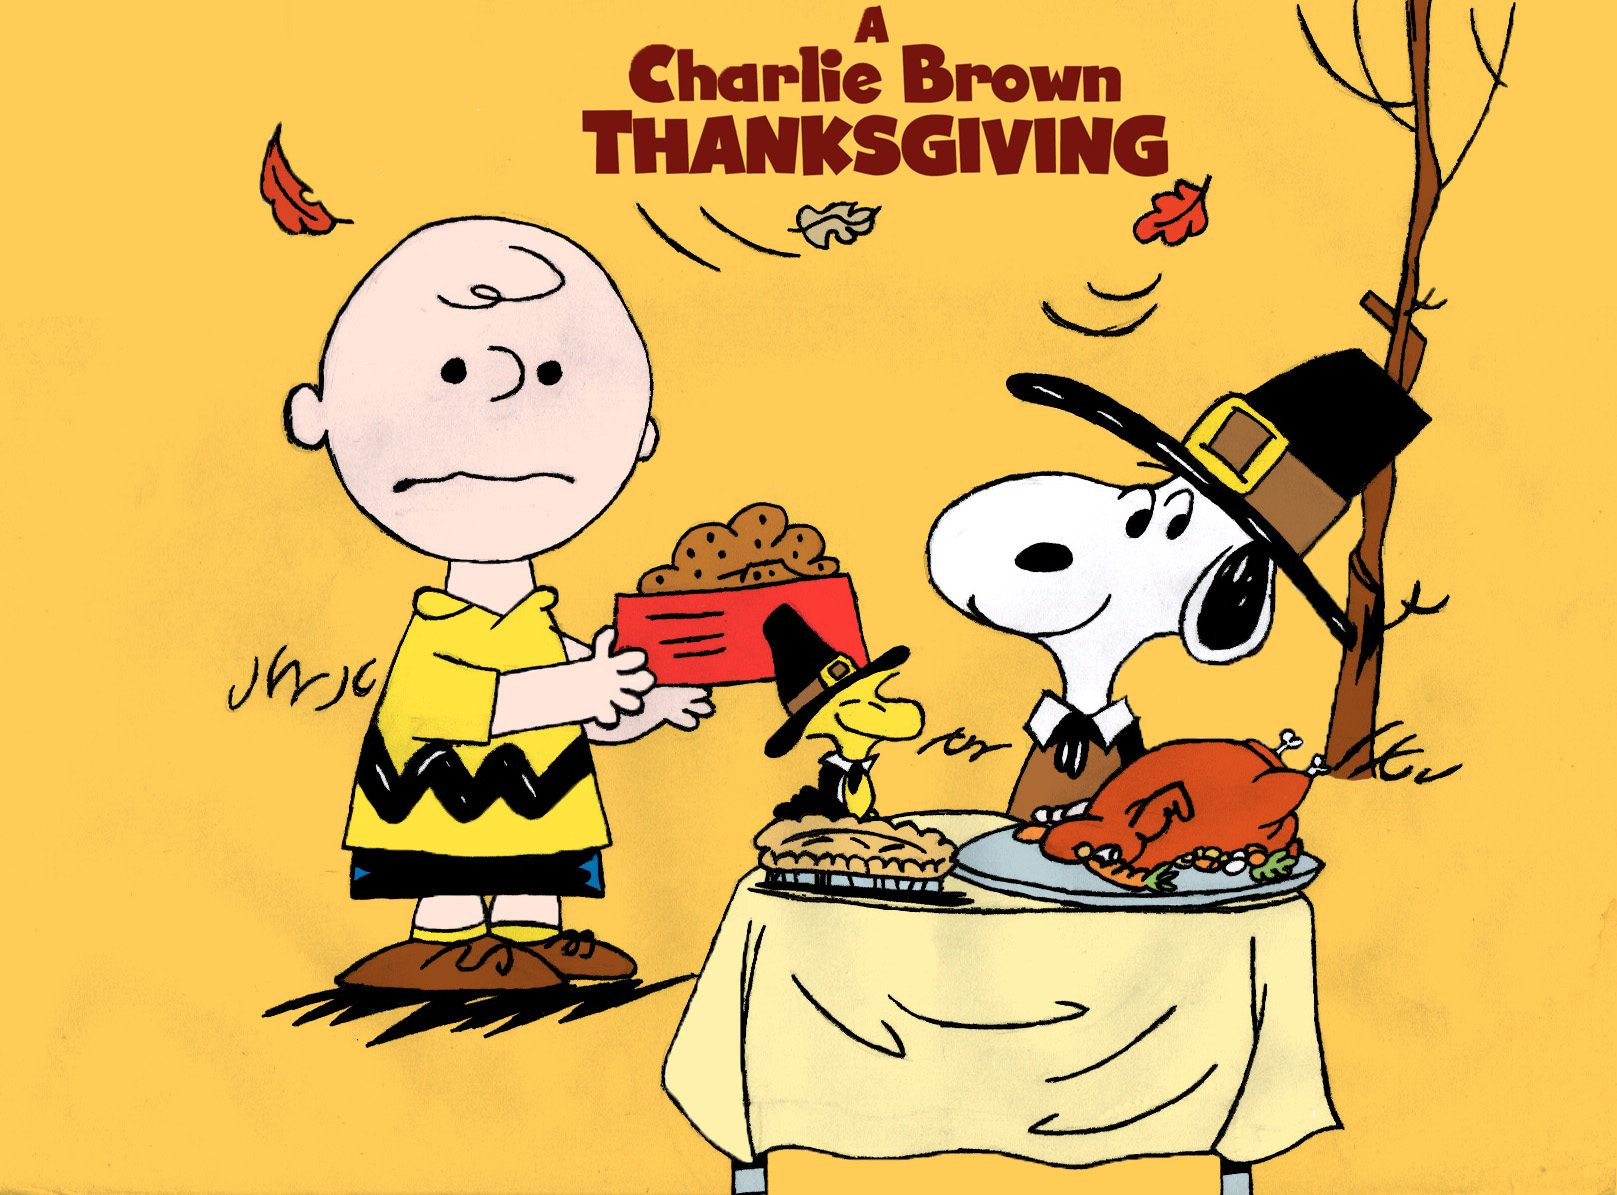 Charlie Brown Thanksgiving Dinner  Posted on November 21 2014 by Melissa Morell